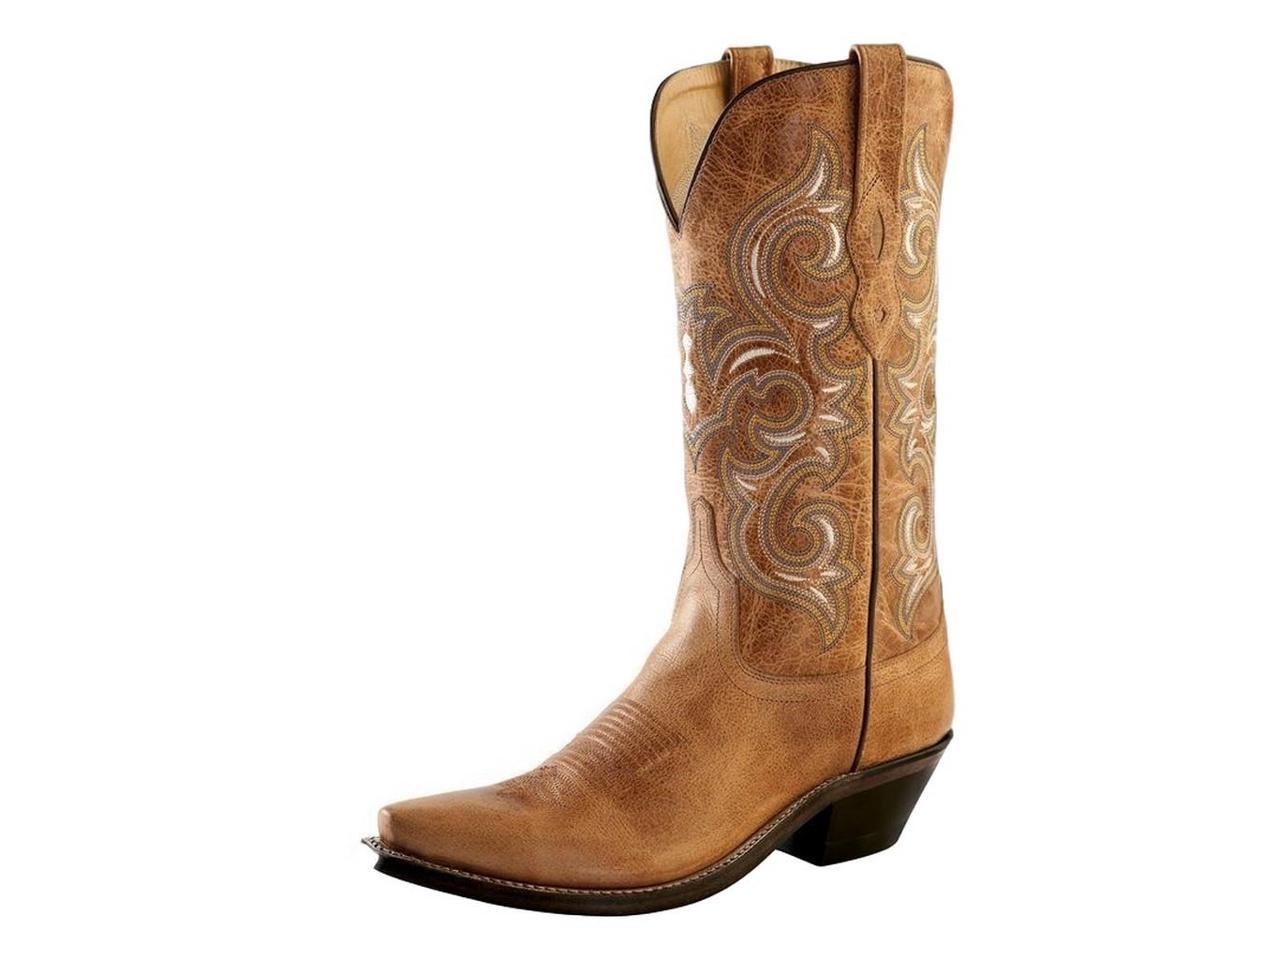 Old West Cowboy Boots Womens Snip Toe B Leather Lined 7 B Toe Tan Fry LF1541 bffcb6